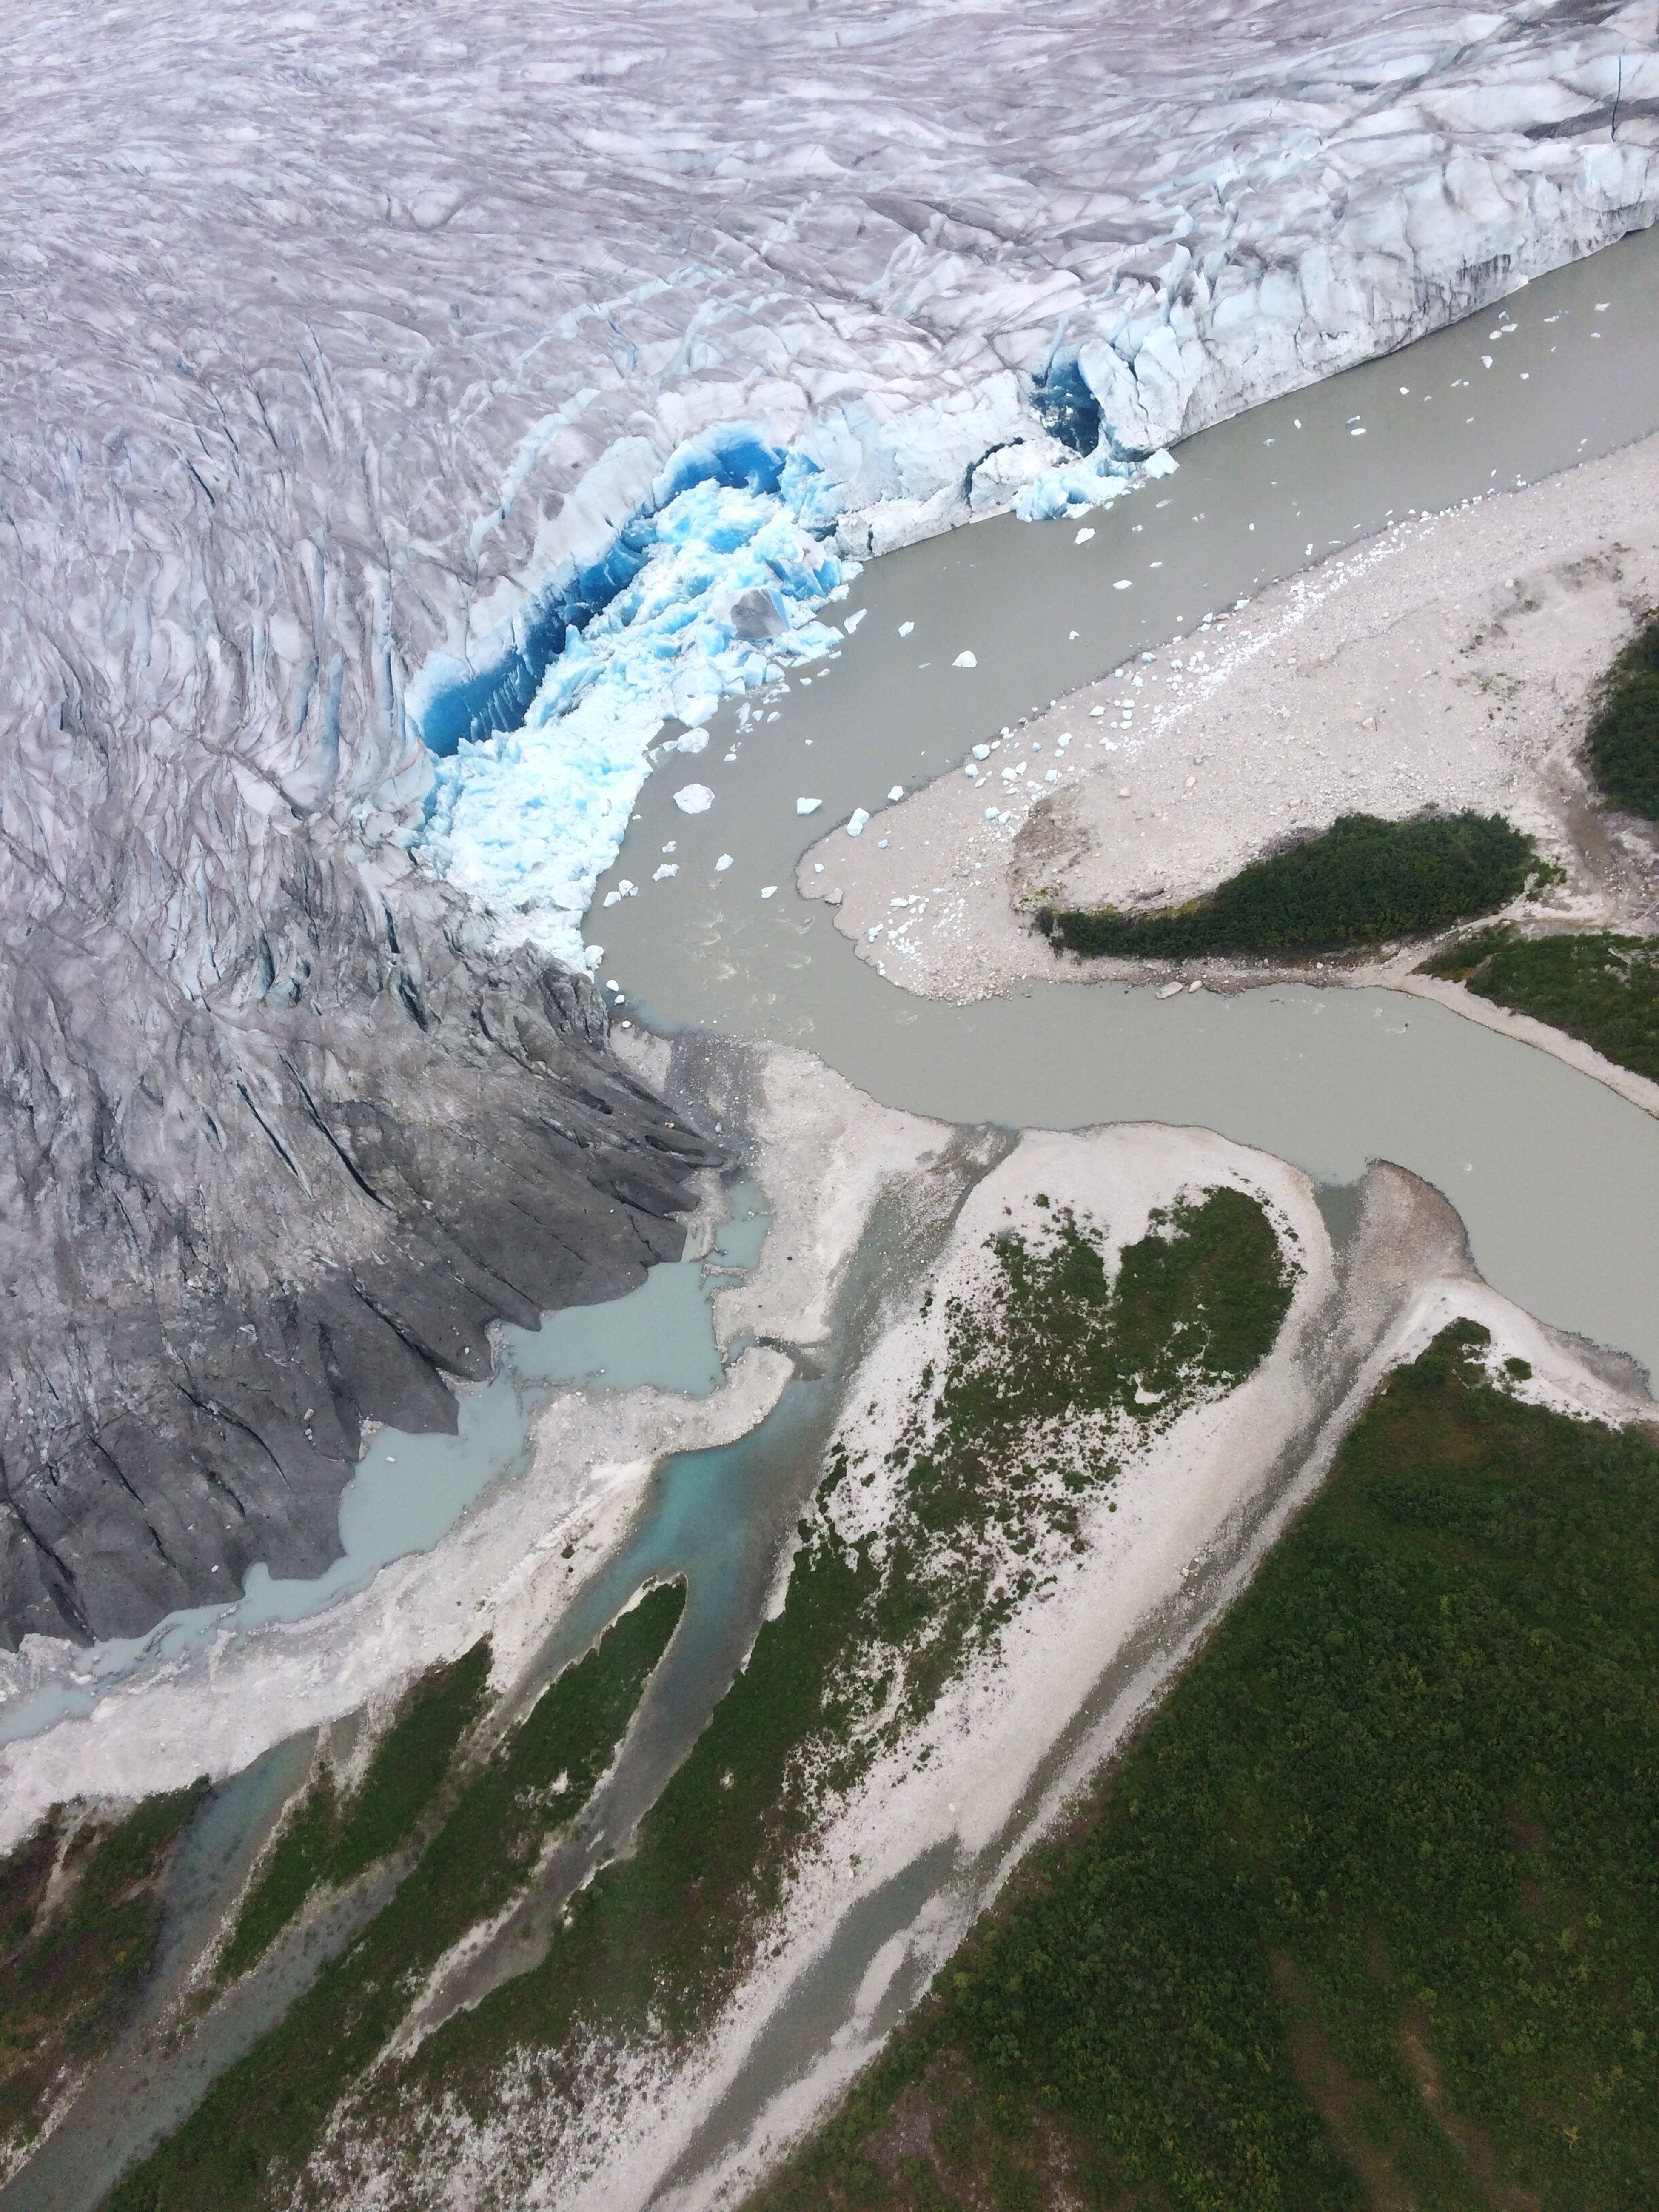 Honey, Global Warming is real Alaska View From Above View From An Airplane Glacier Melting Global Warming Sadness Blue Ice Taku Glacier Calentamiento Global Derretimiento North Pole Juneau Airplane